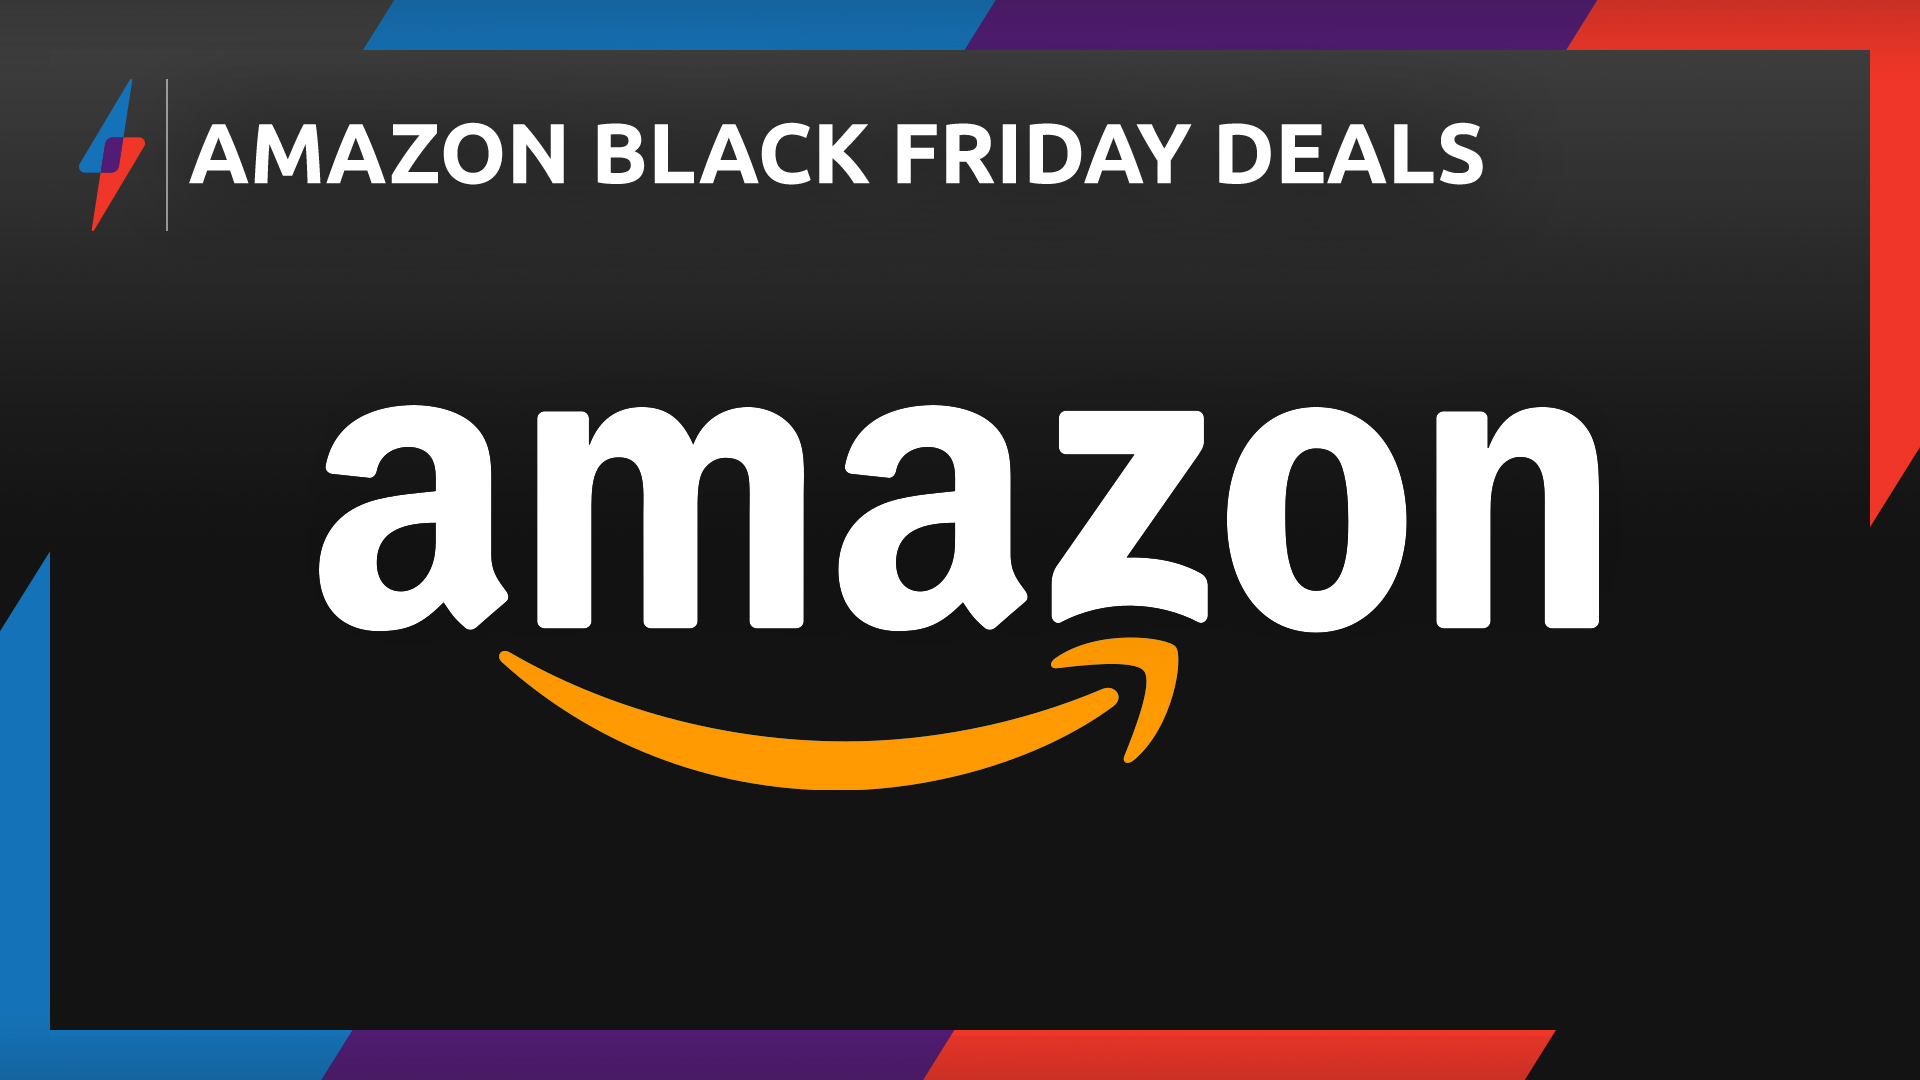 Amazon Black Friday Deals and Offers